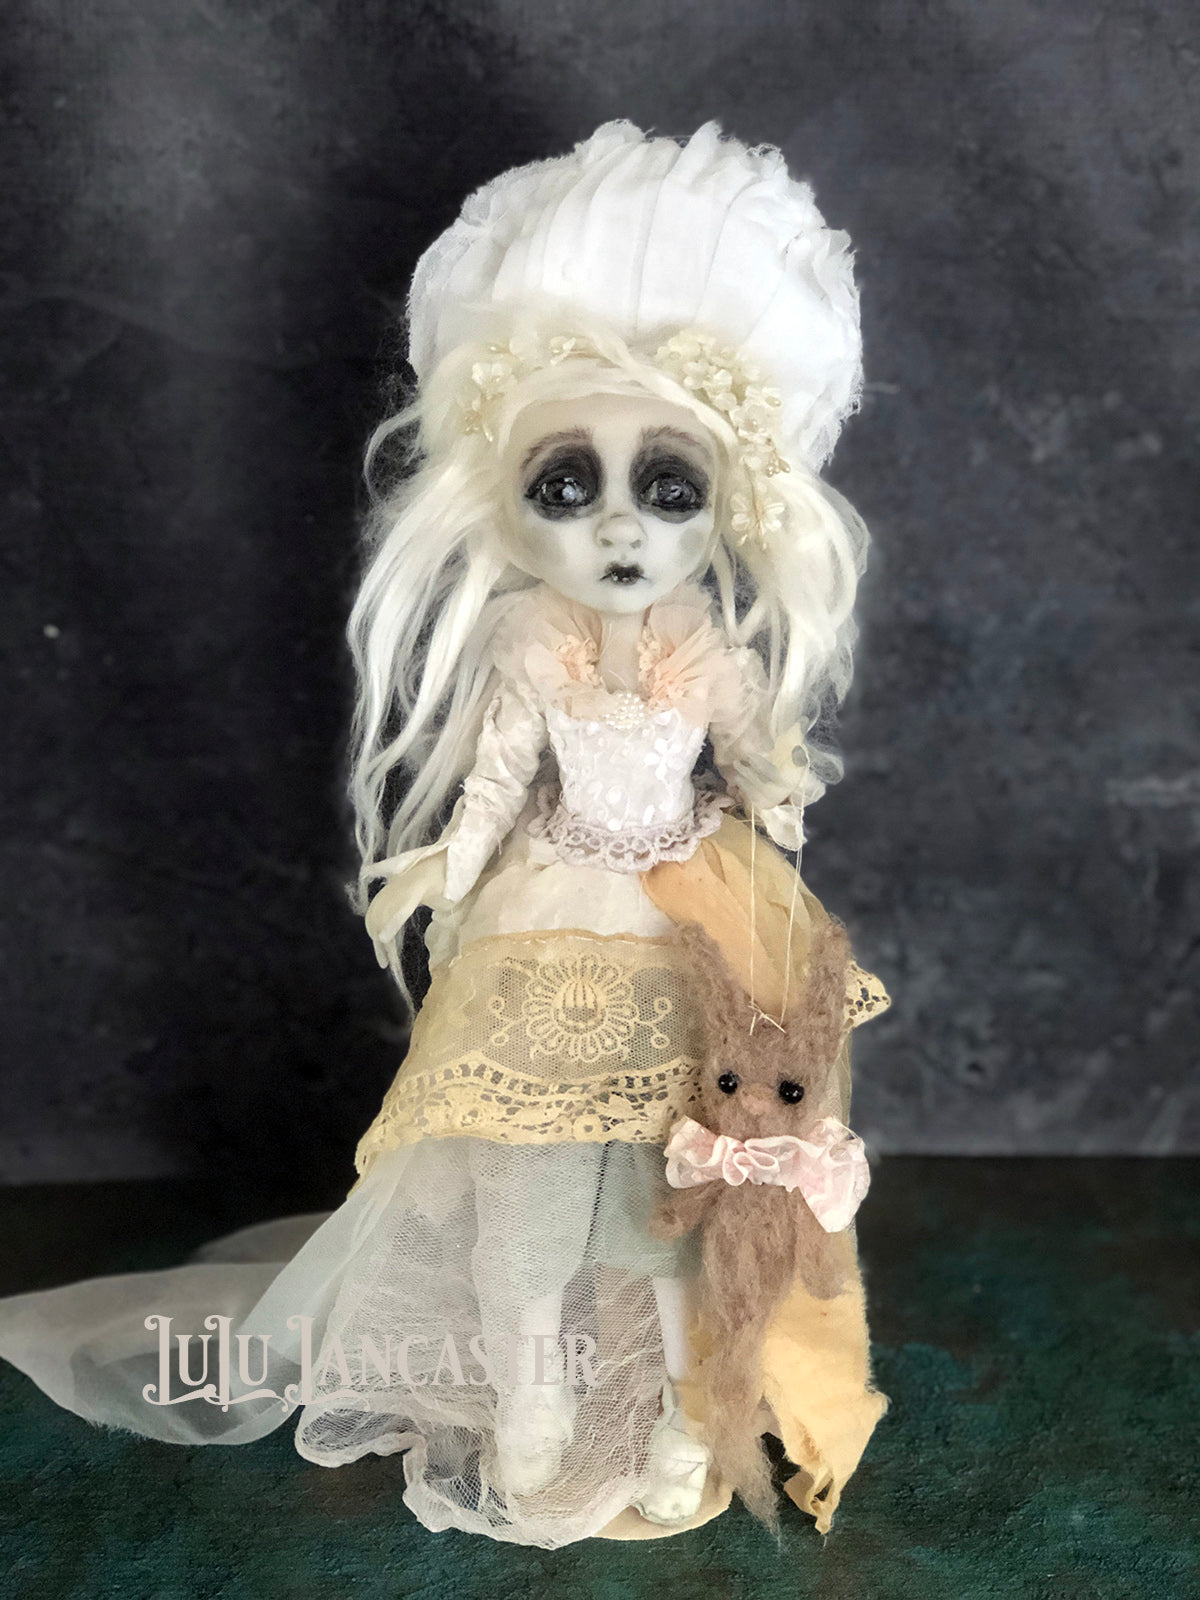 Morea lost Halloween Ghostie Original Art Doll by LuLu Lancaster